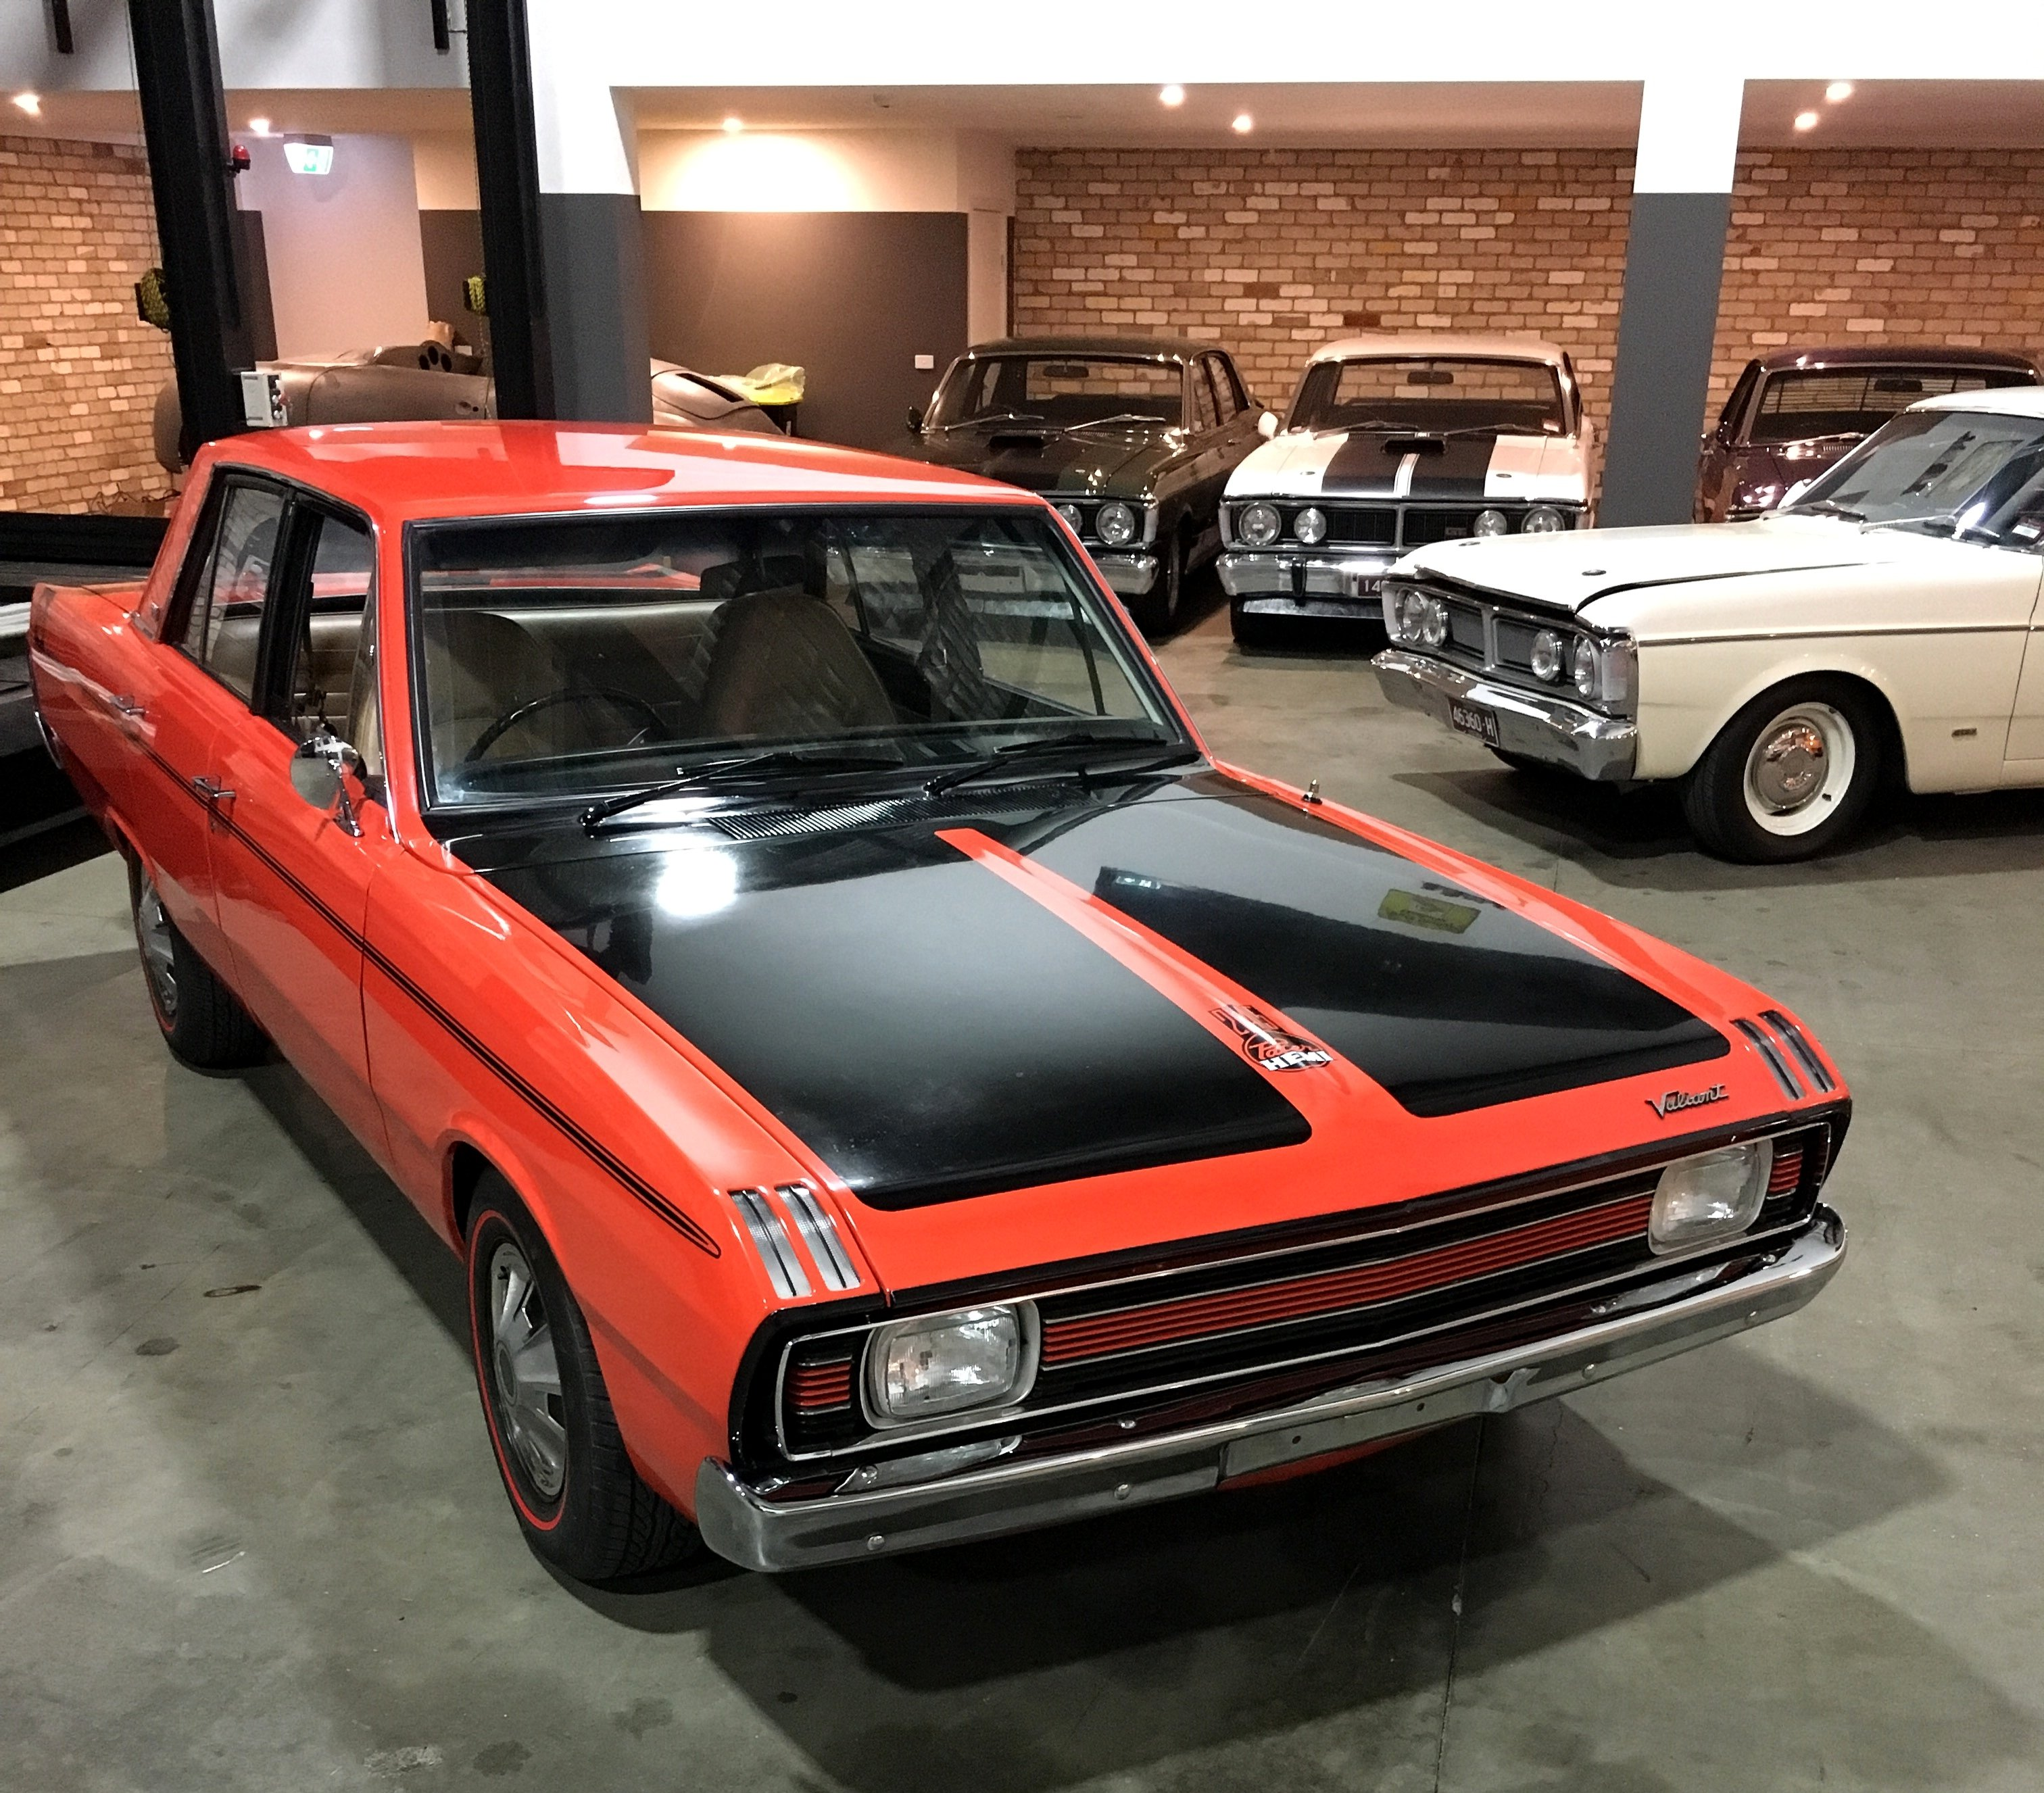 Aussie Muscle Car Sales >> 1970 Chrysler Valiant Pacer VG E34 Valiant Pacer   Muscle Car Sales